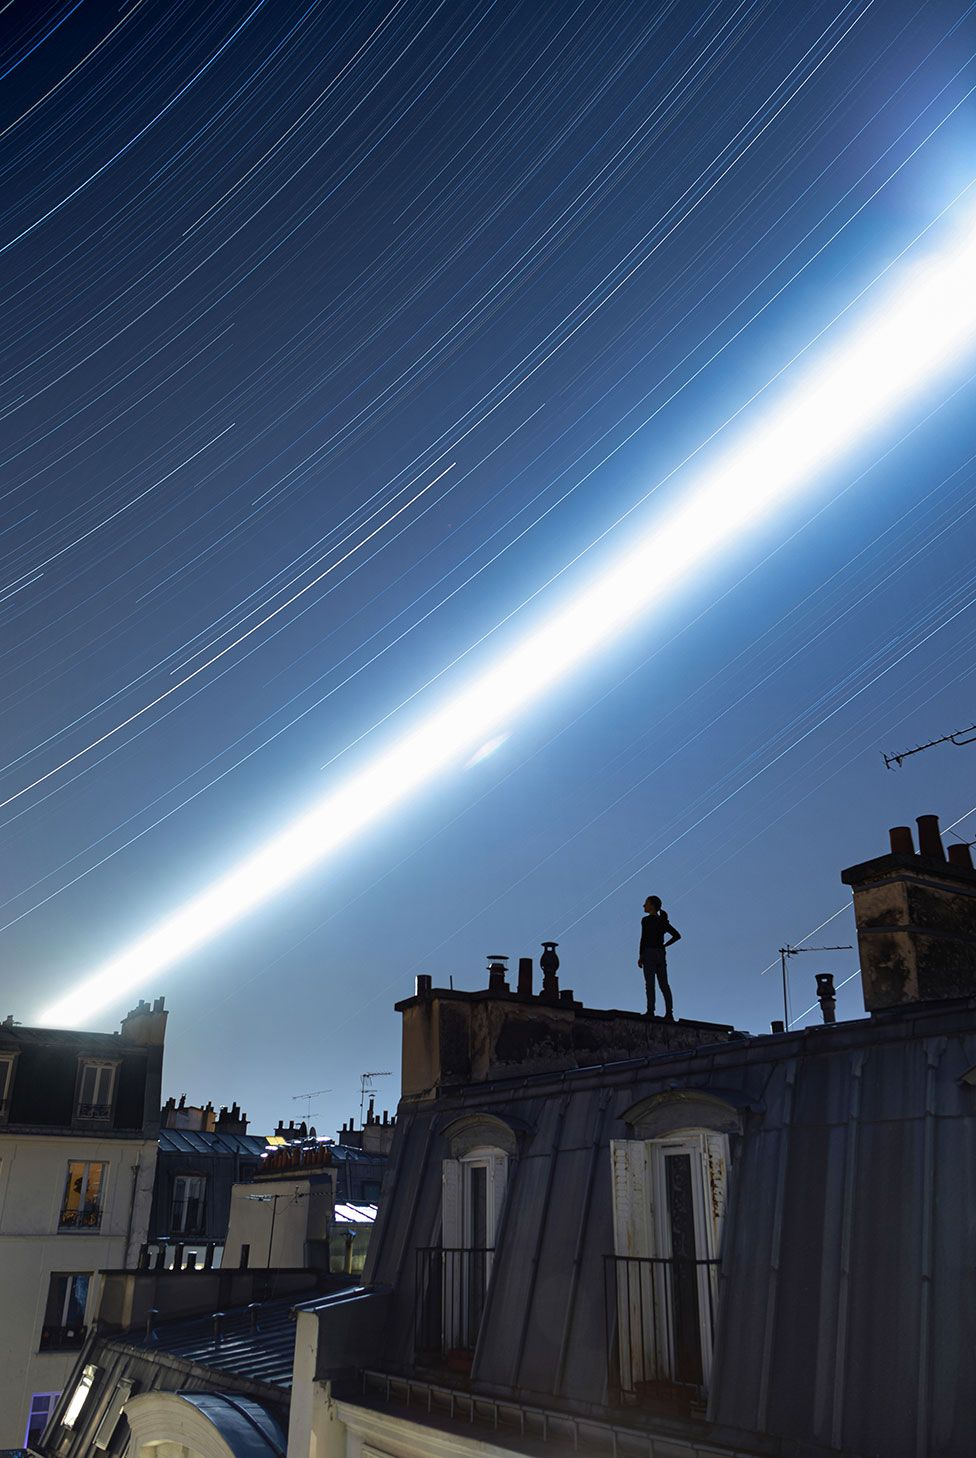 An image showing a woman standing on a Parisian rooftop with a long exposure view of the night sky